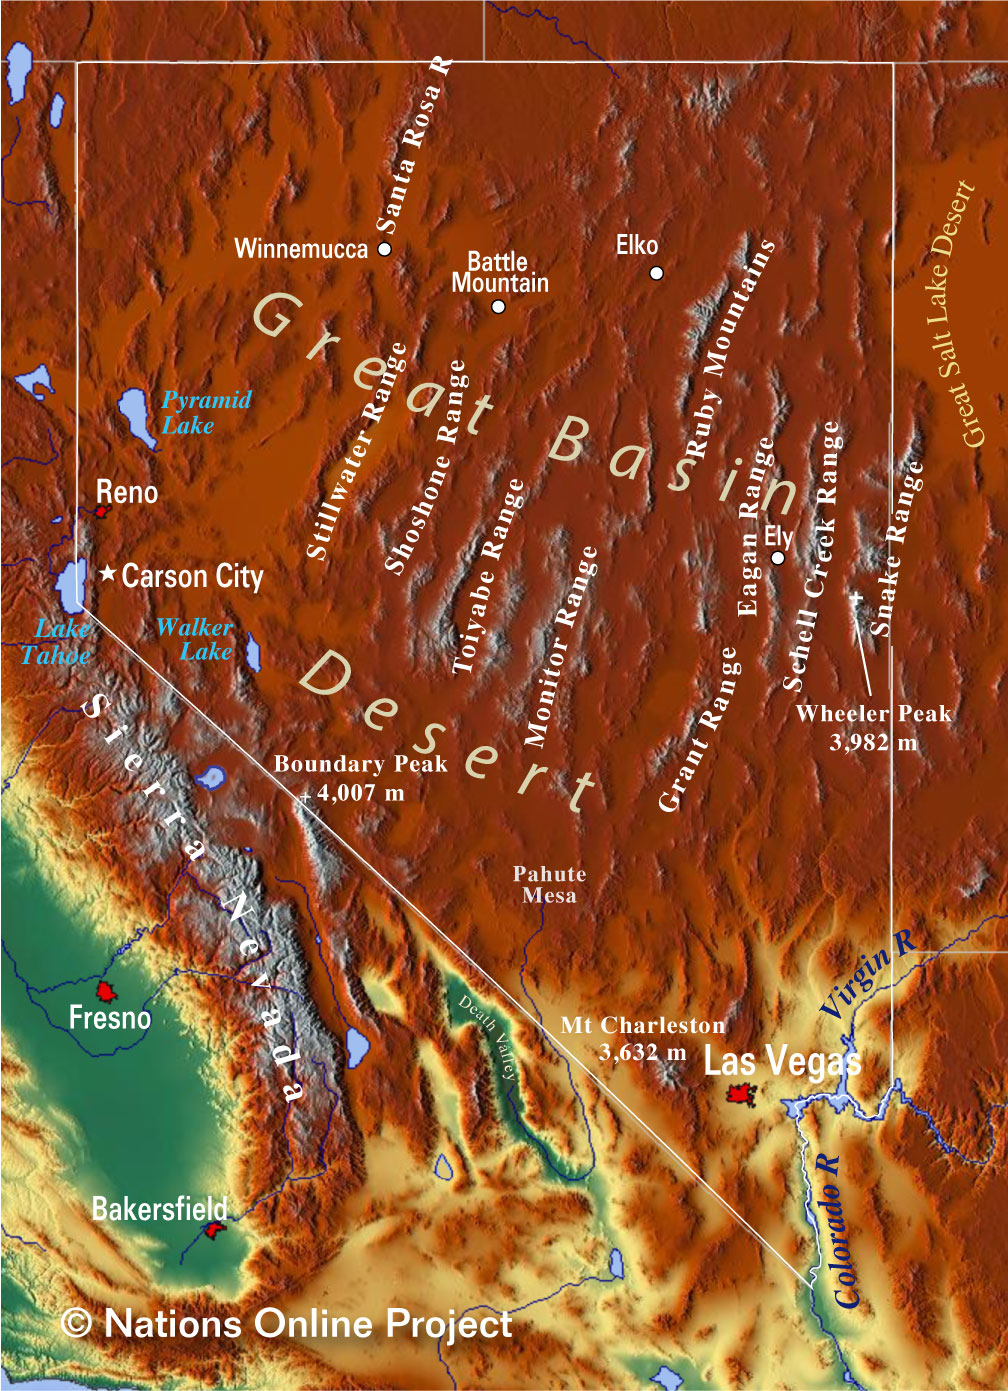 Reference Maps of Nevada, USA - Nations Online Project